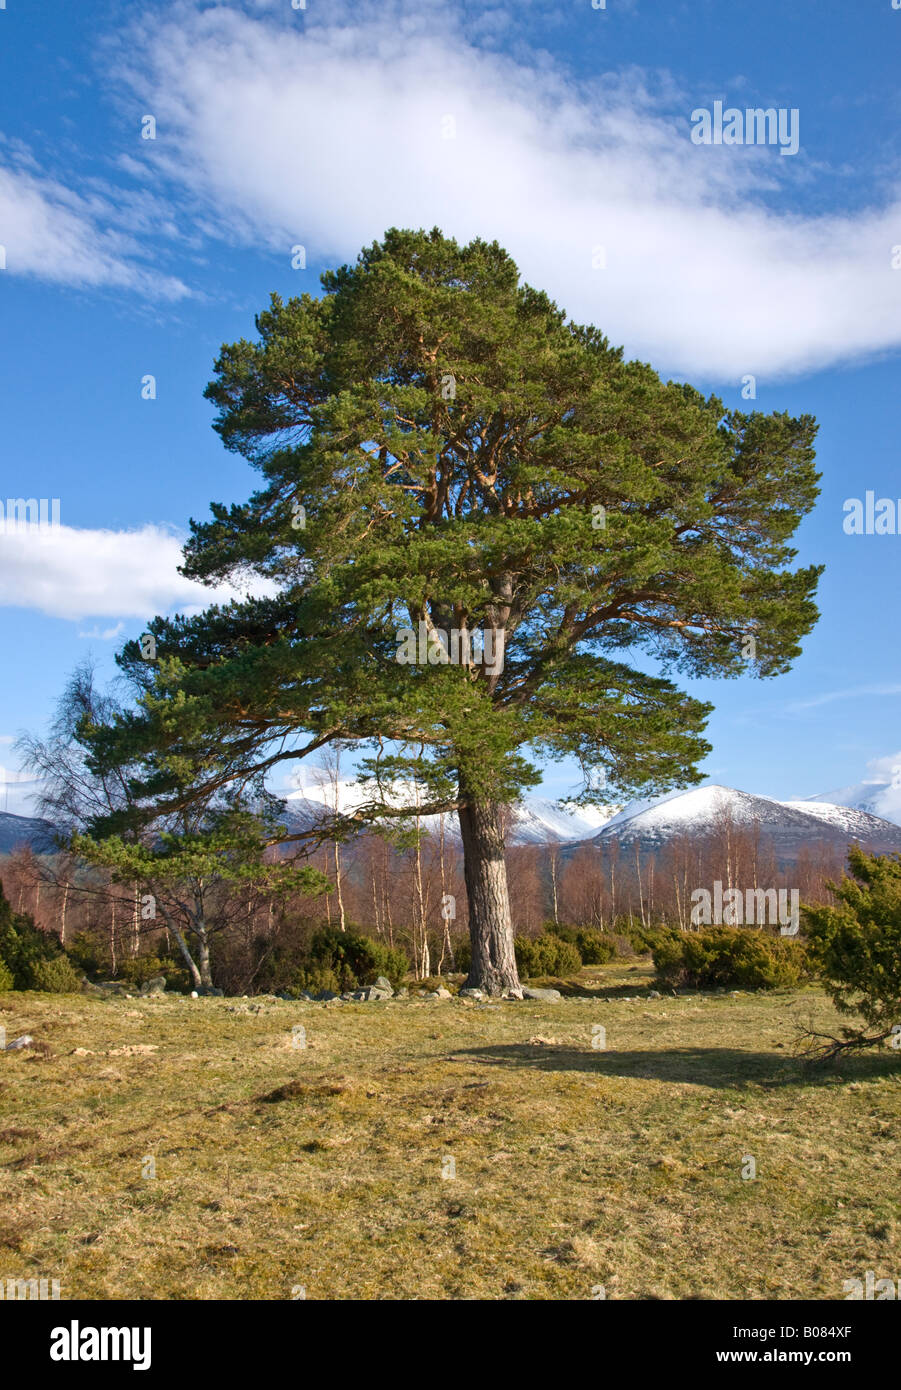 Scots pine tree at Tulloch Grue in Rothiemurchus near Aviemore in the Cairngorms National Park Scotland - Stock Image